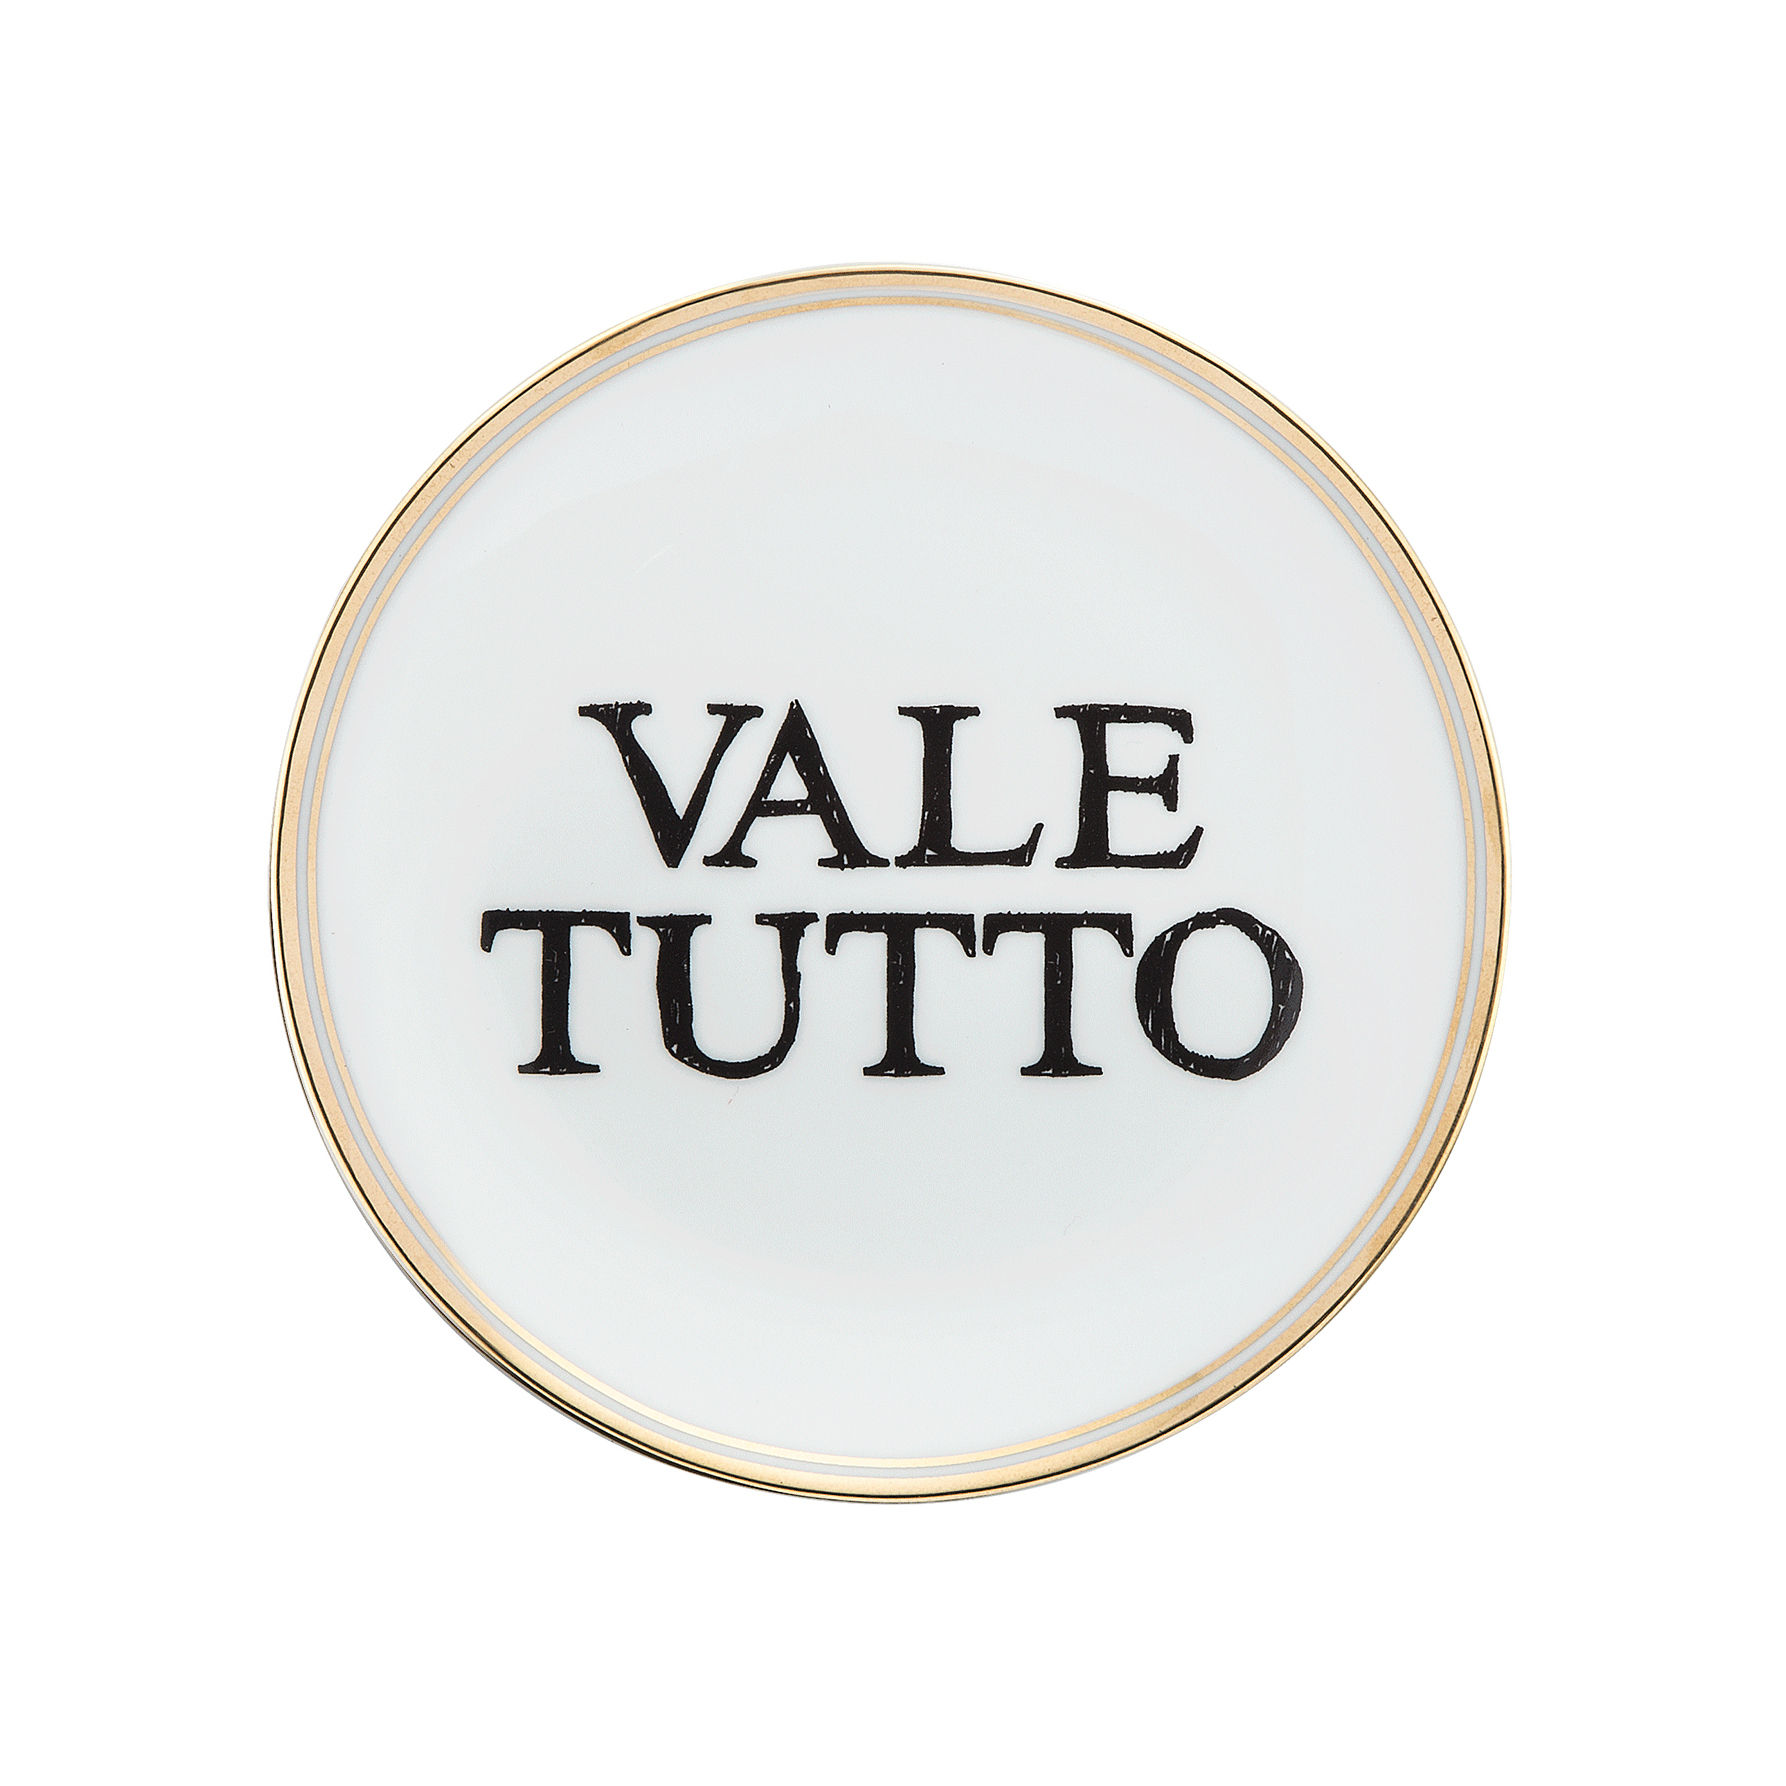 Tableware - Plates - Vale tutto Dessert plate - / ø 15 cm by Bitossi Home - Anything goes - China